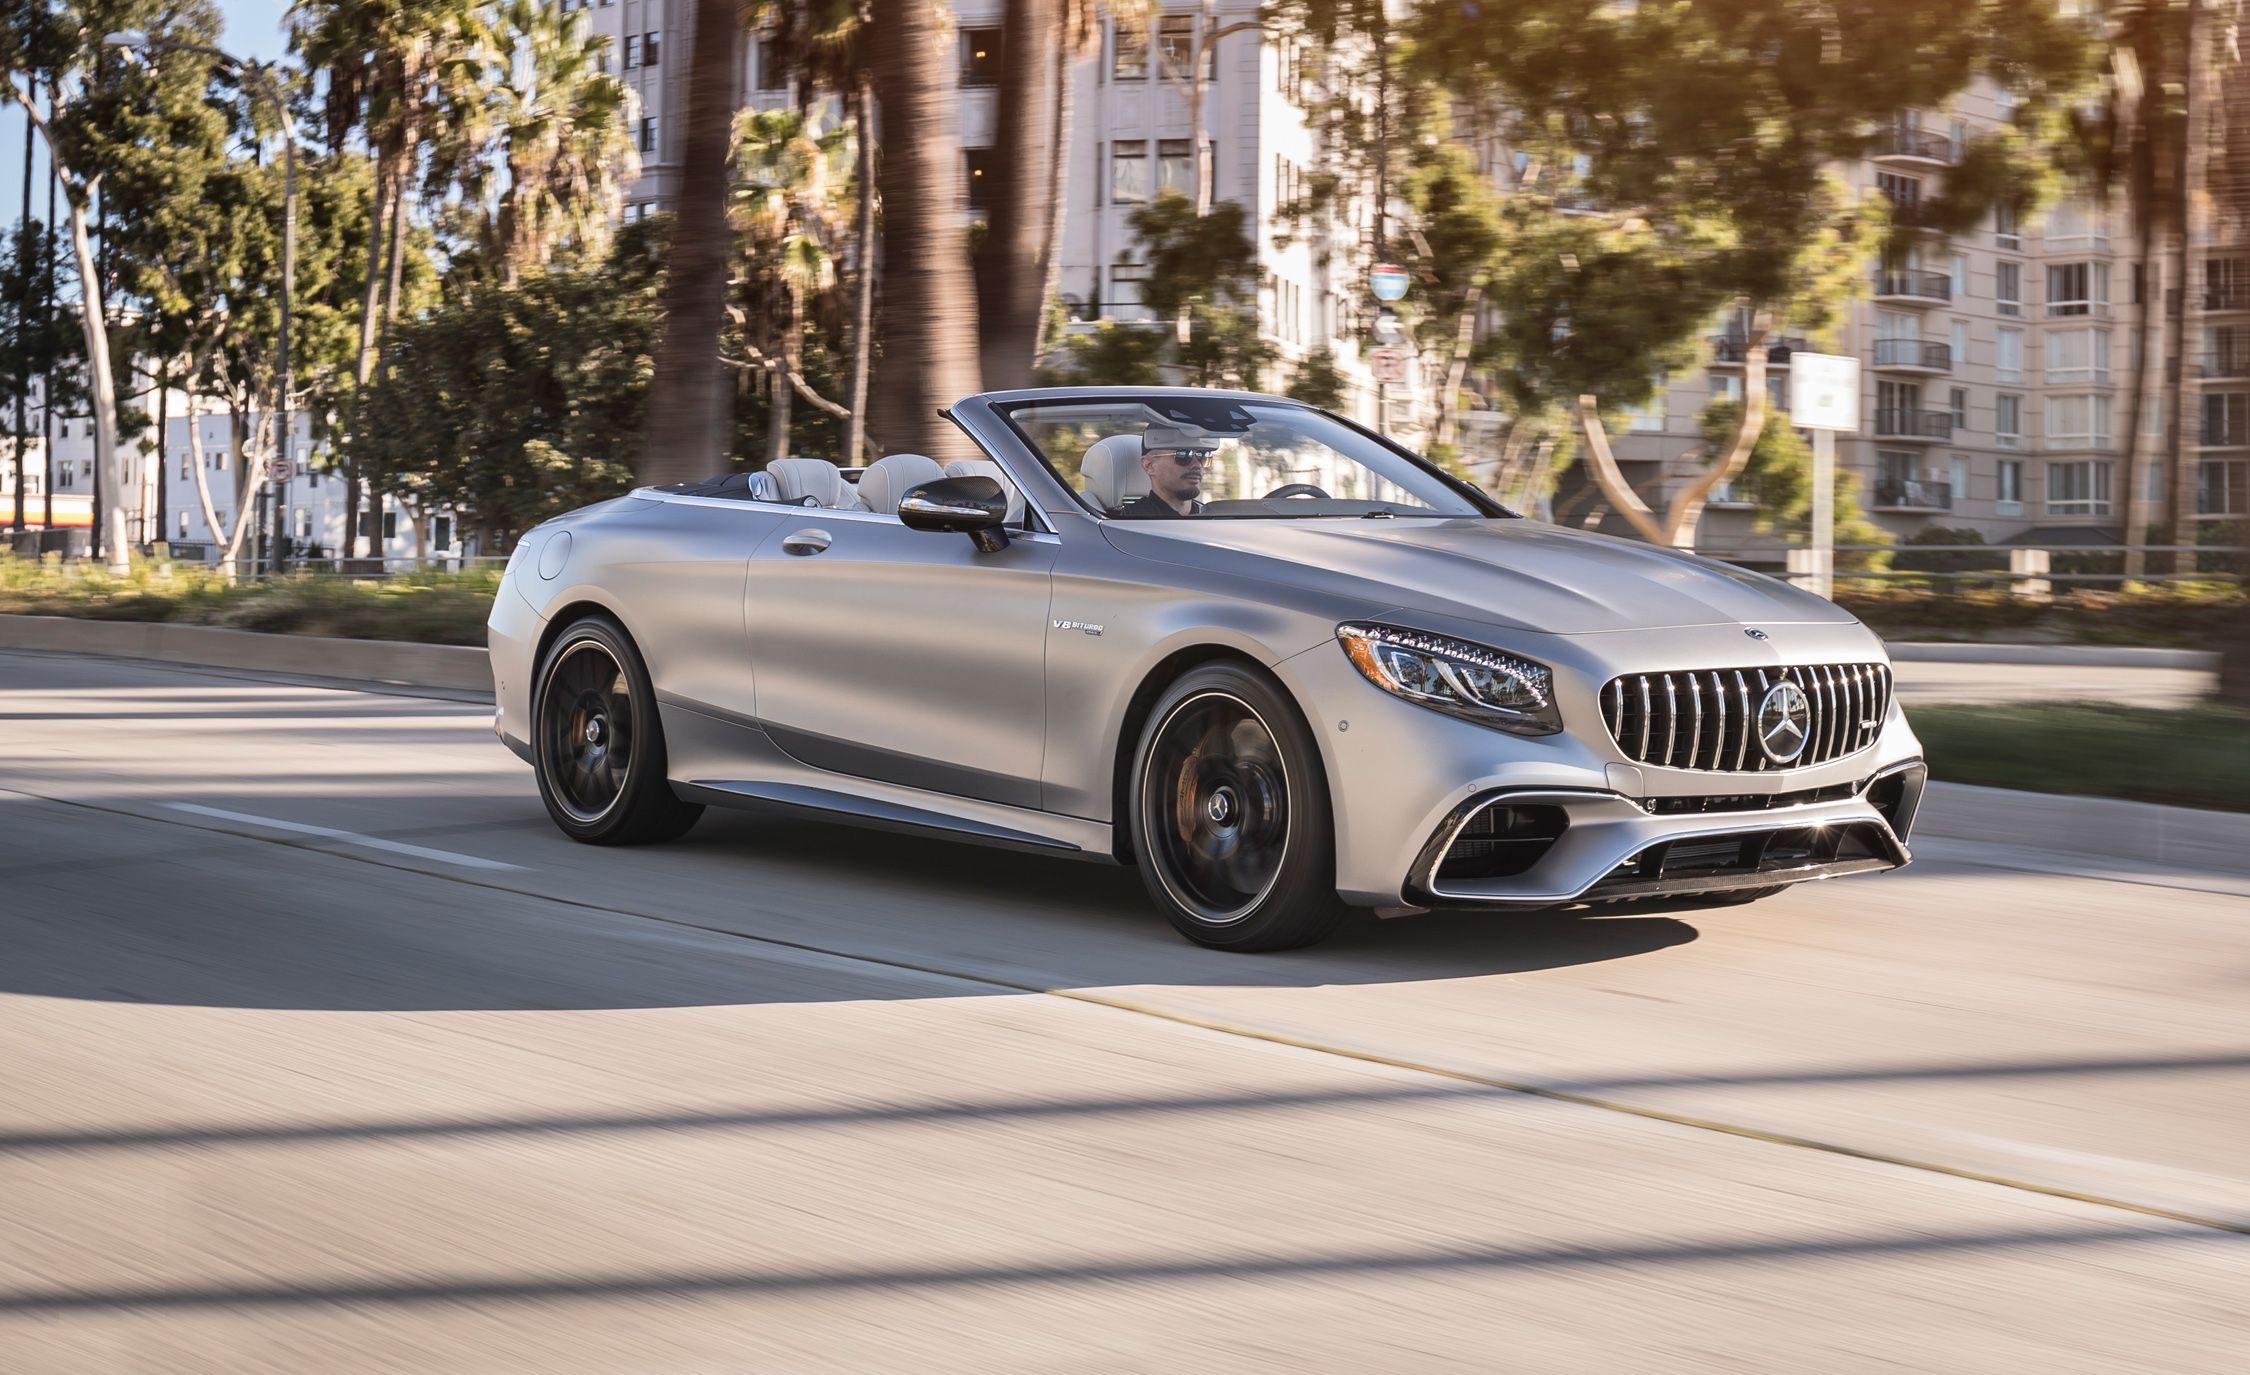 2018 Mercedes Benz / Mercedes AMG S Class Coupe And Cabriolet